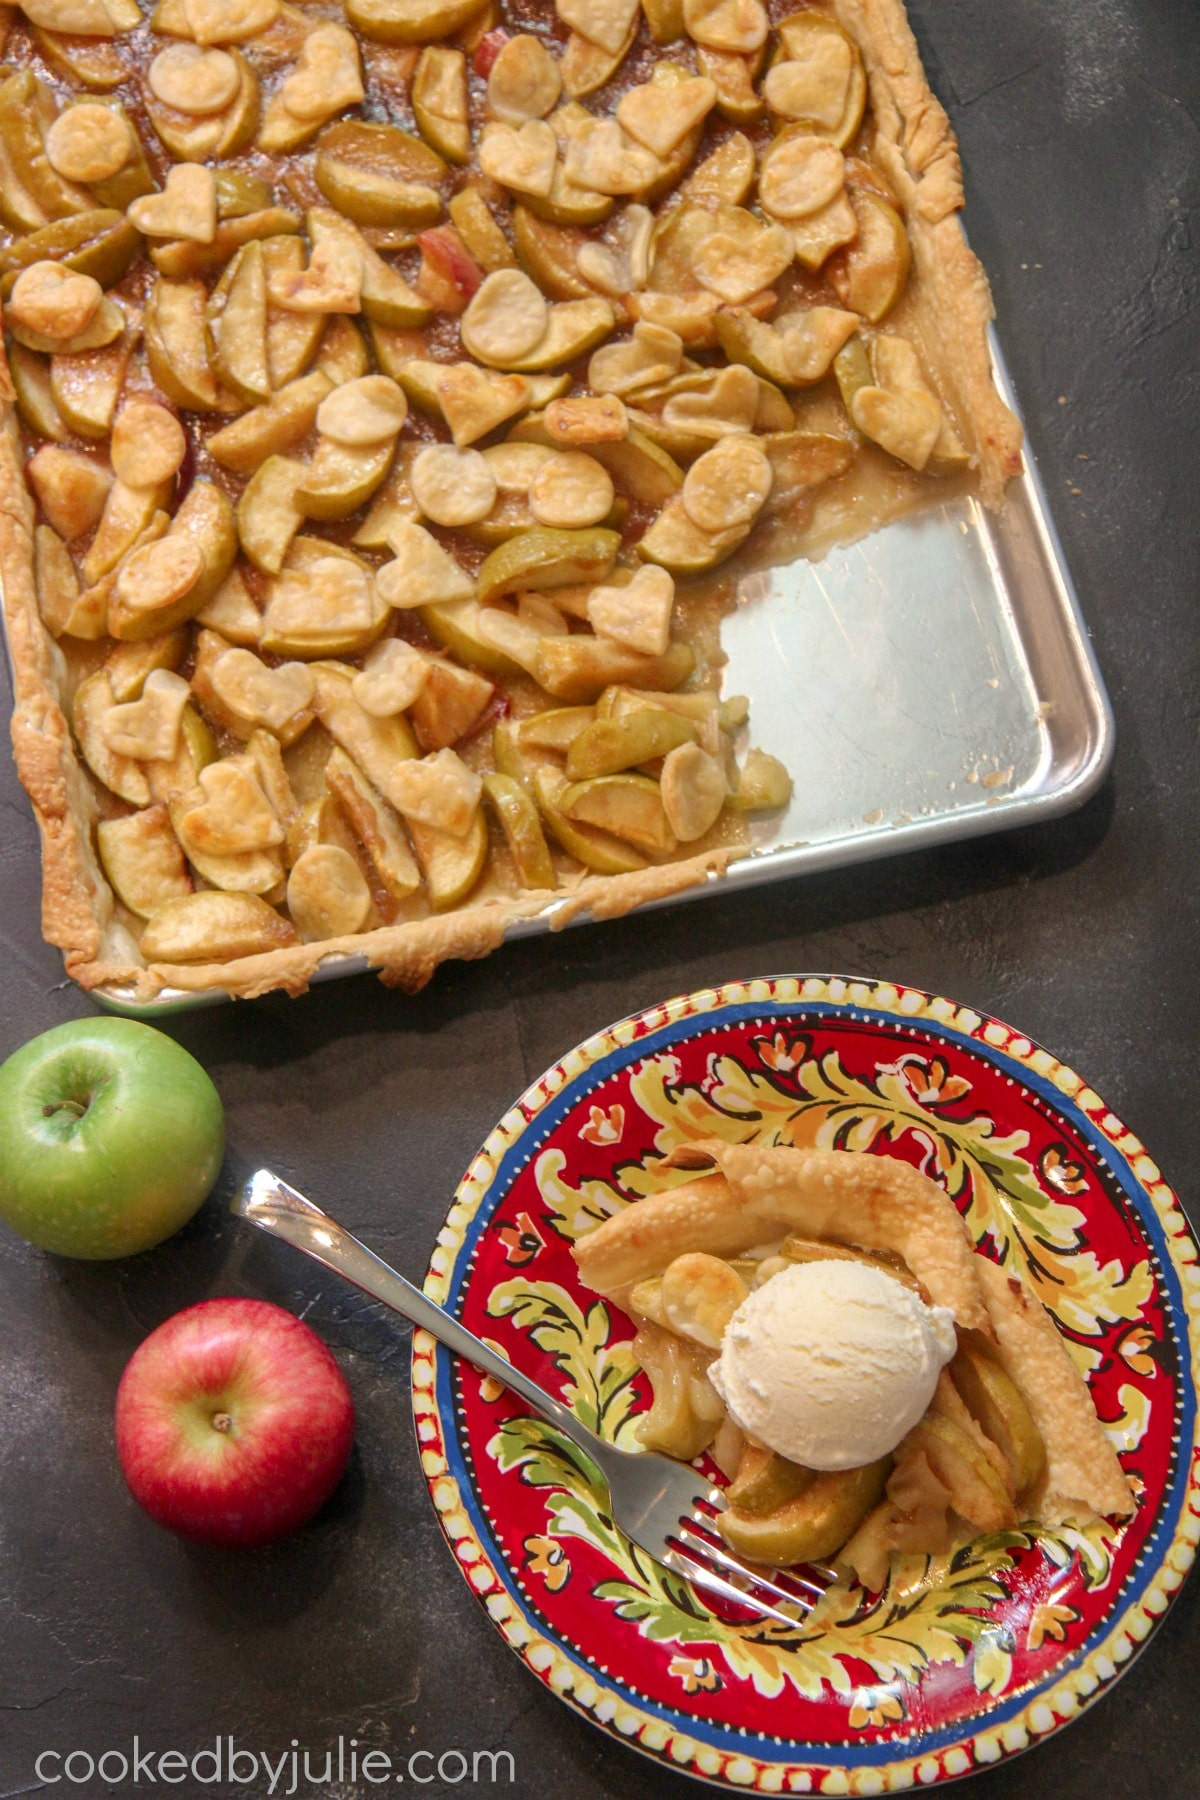 Baked Slab Apple Pie